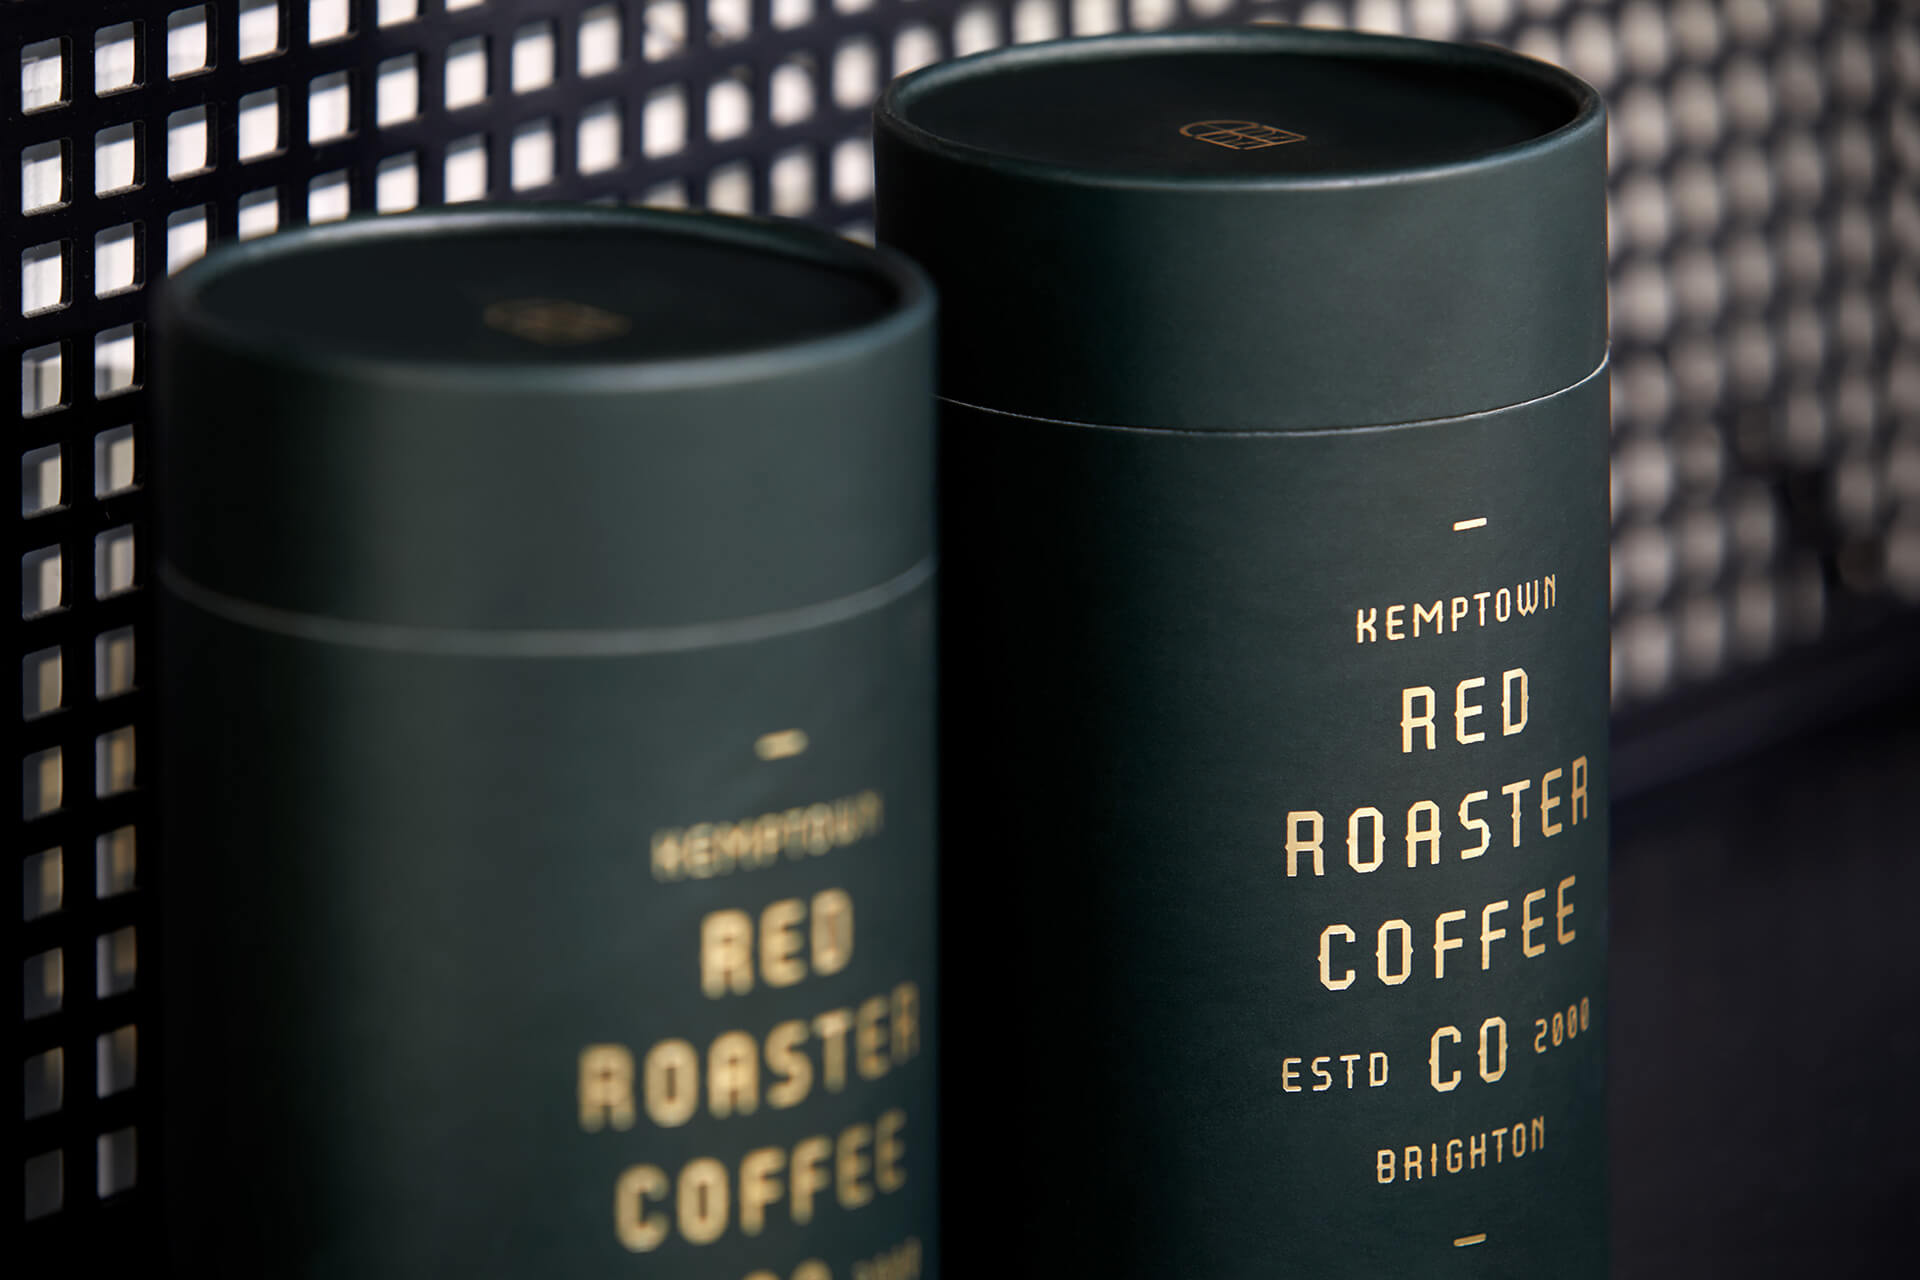 dark_kemptown_coffee_packaging